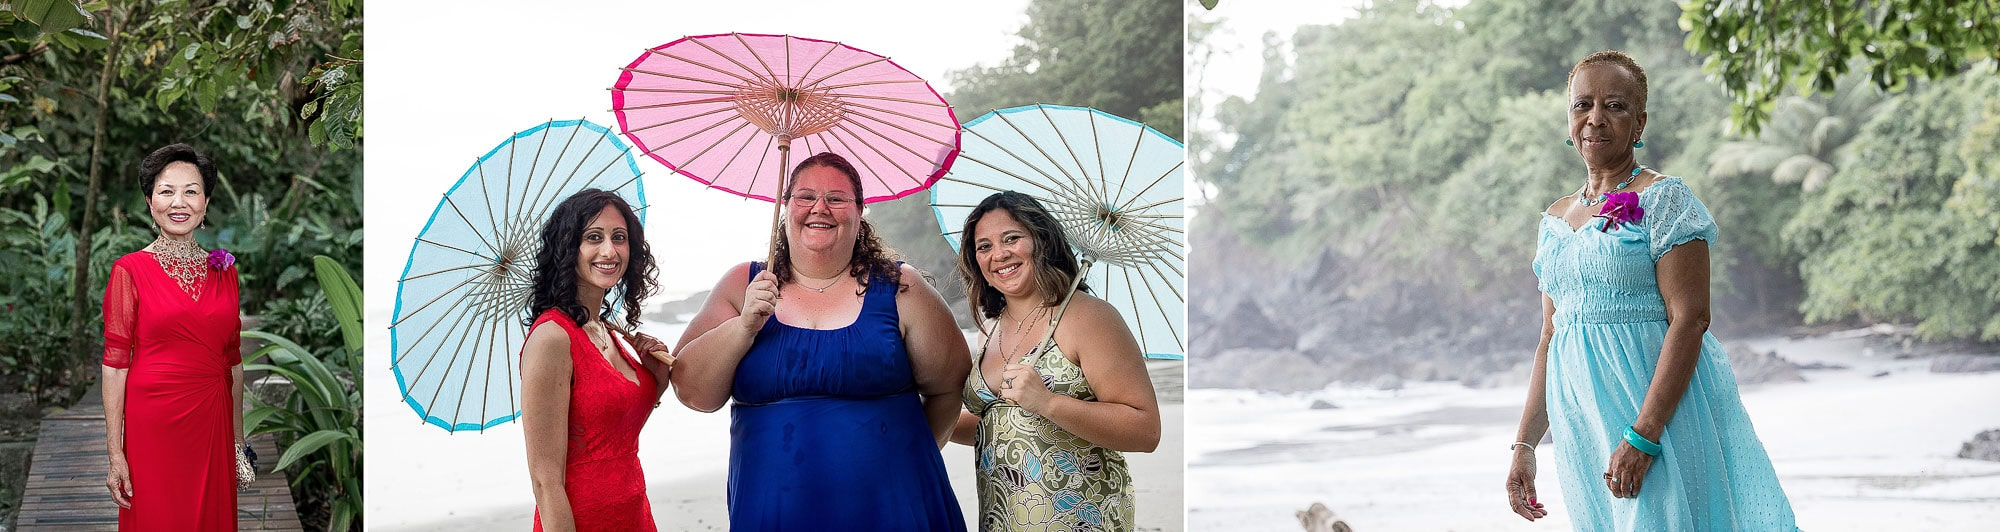 Lovely ladies with their parasols!